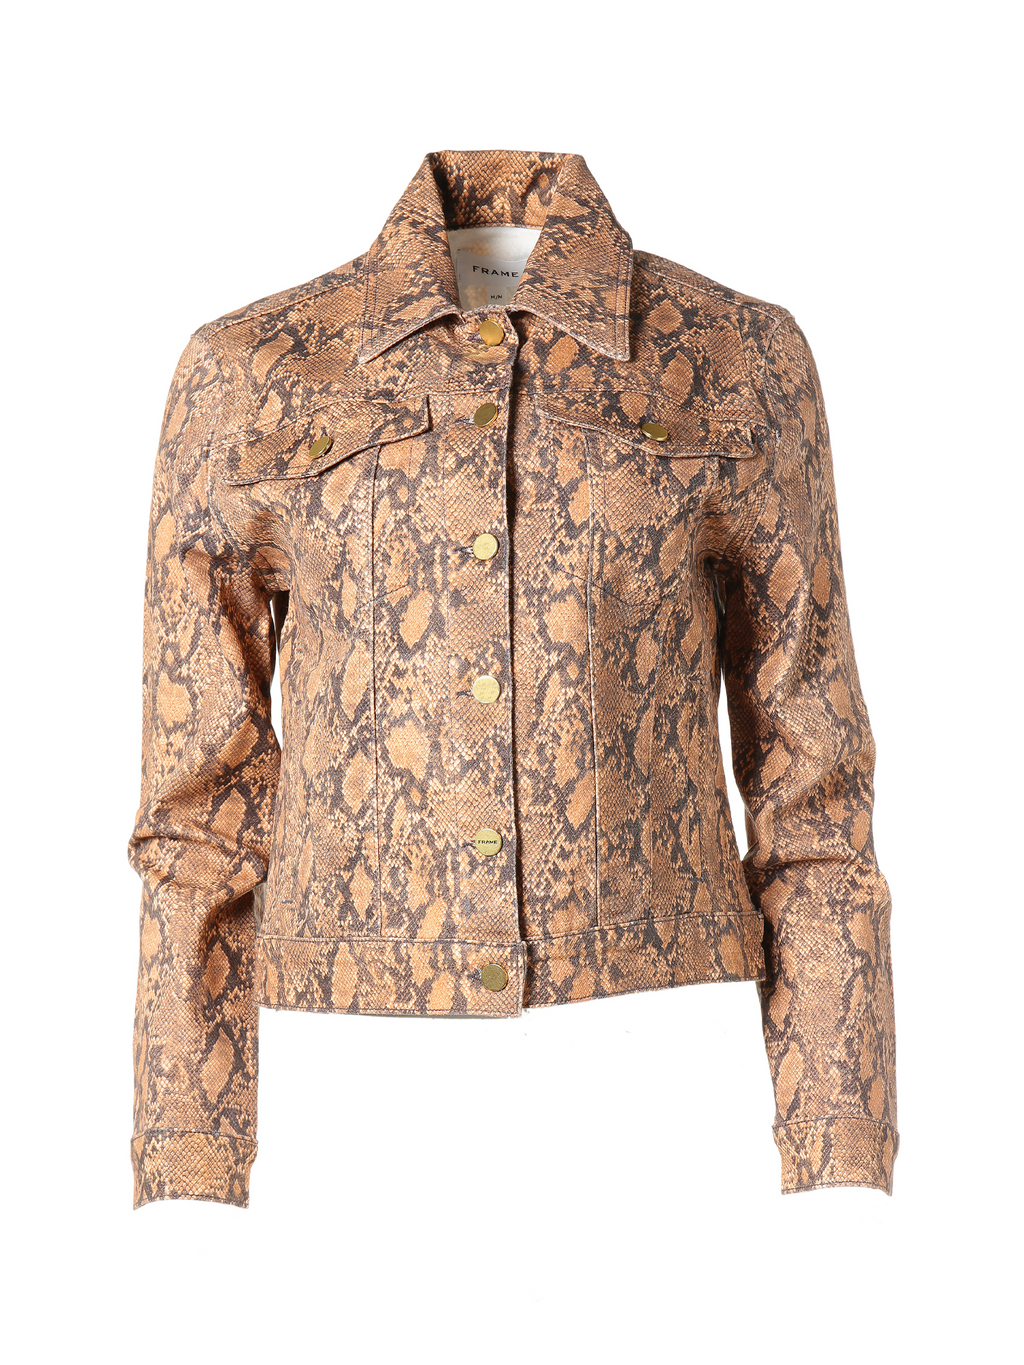 Frame Le Vintage Jacket - Coated Python